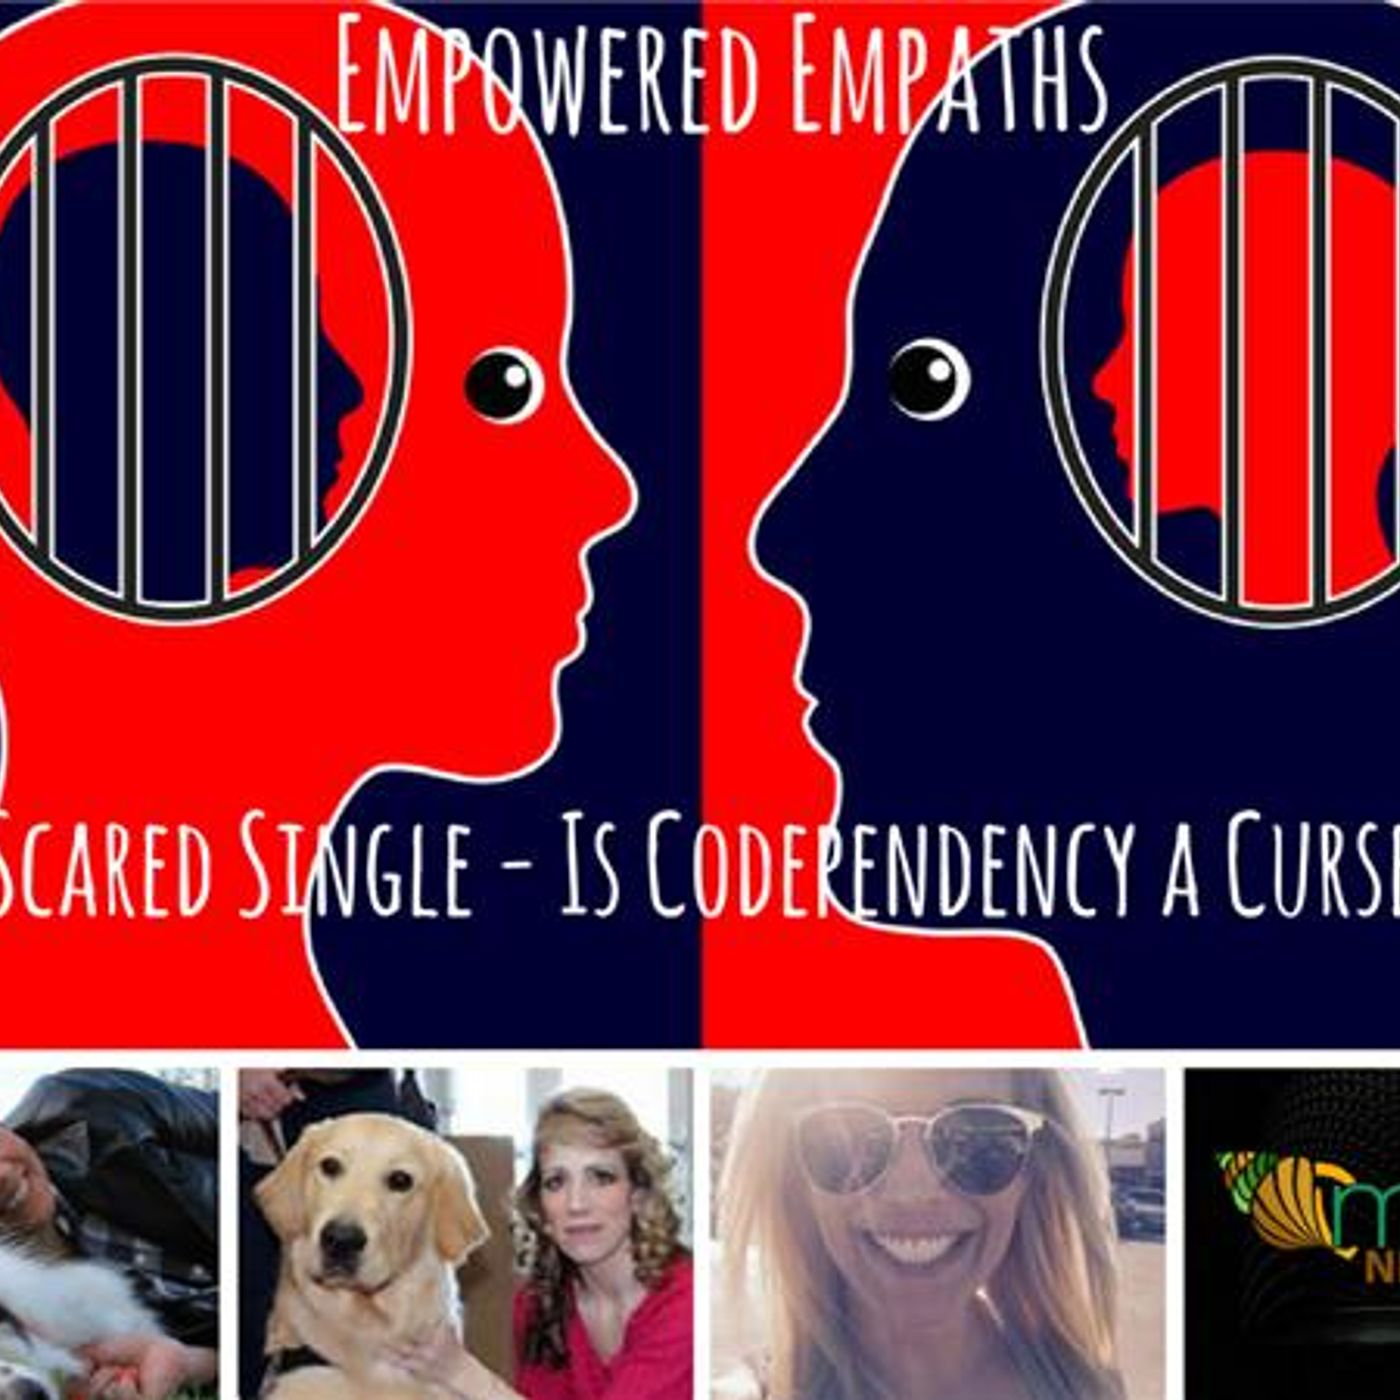 Mental Health News Radio - Empowered Empaths: Scared Single - Is Codependency a Curse?